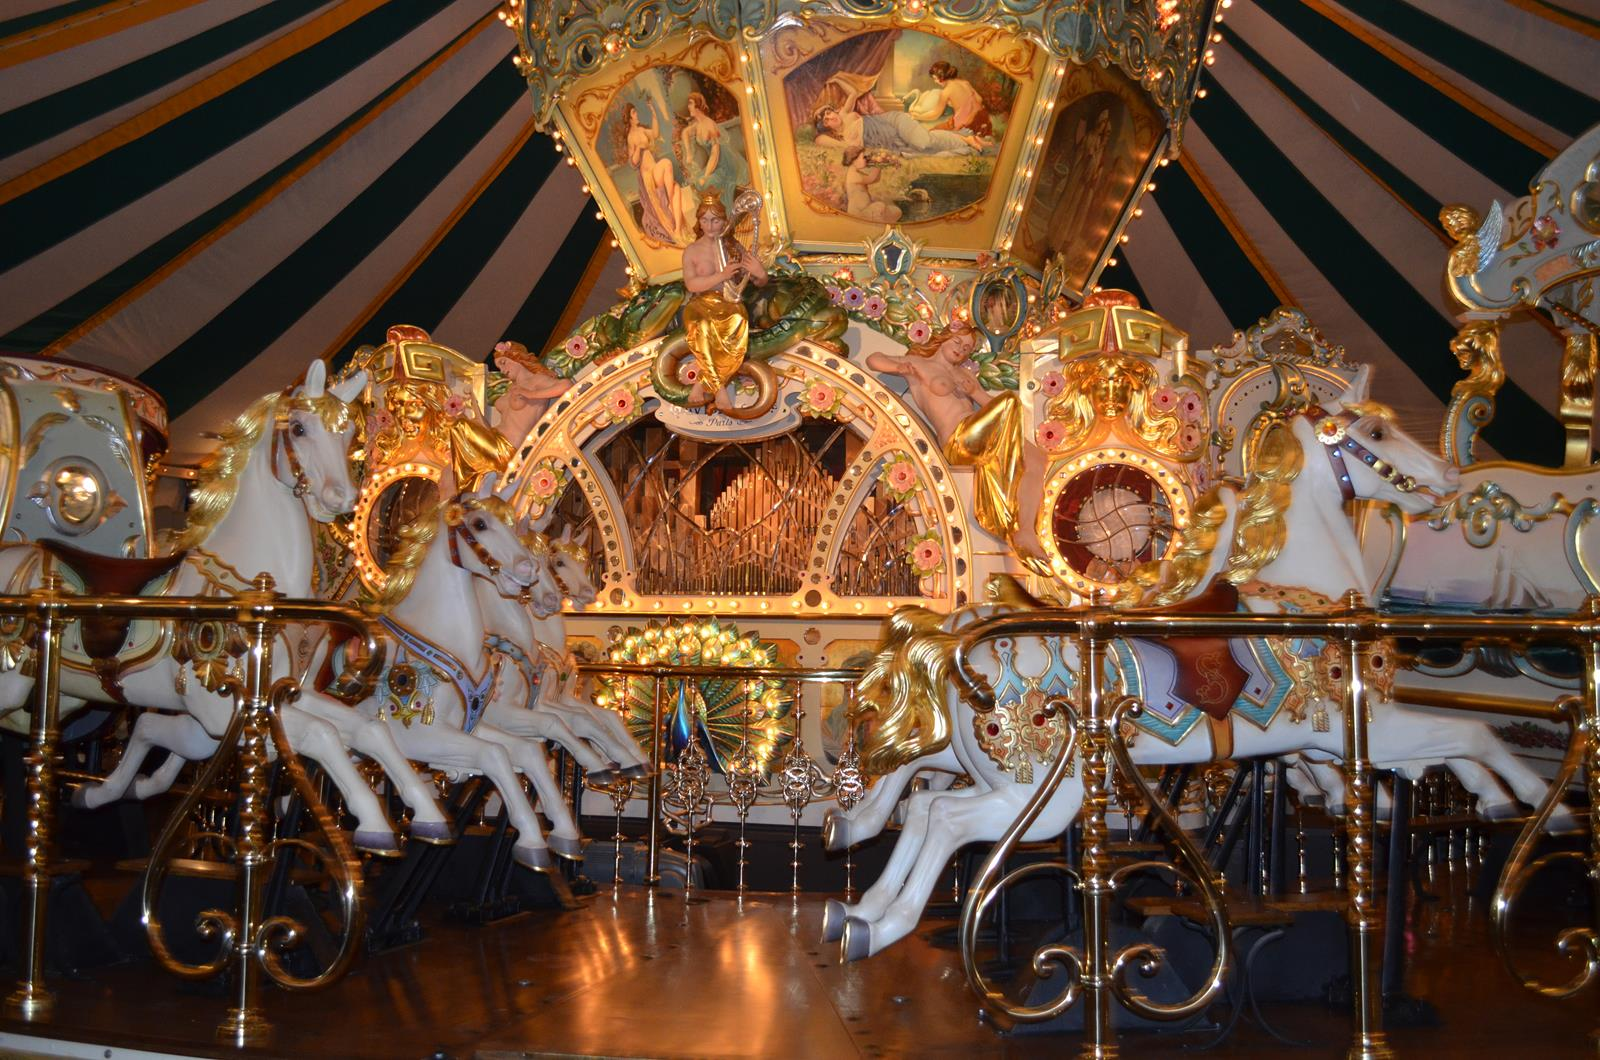 European Salon Carousel at Sanfilippo Estate